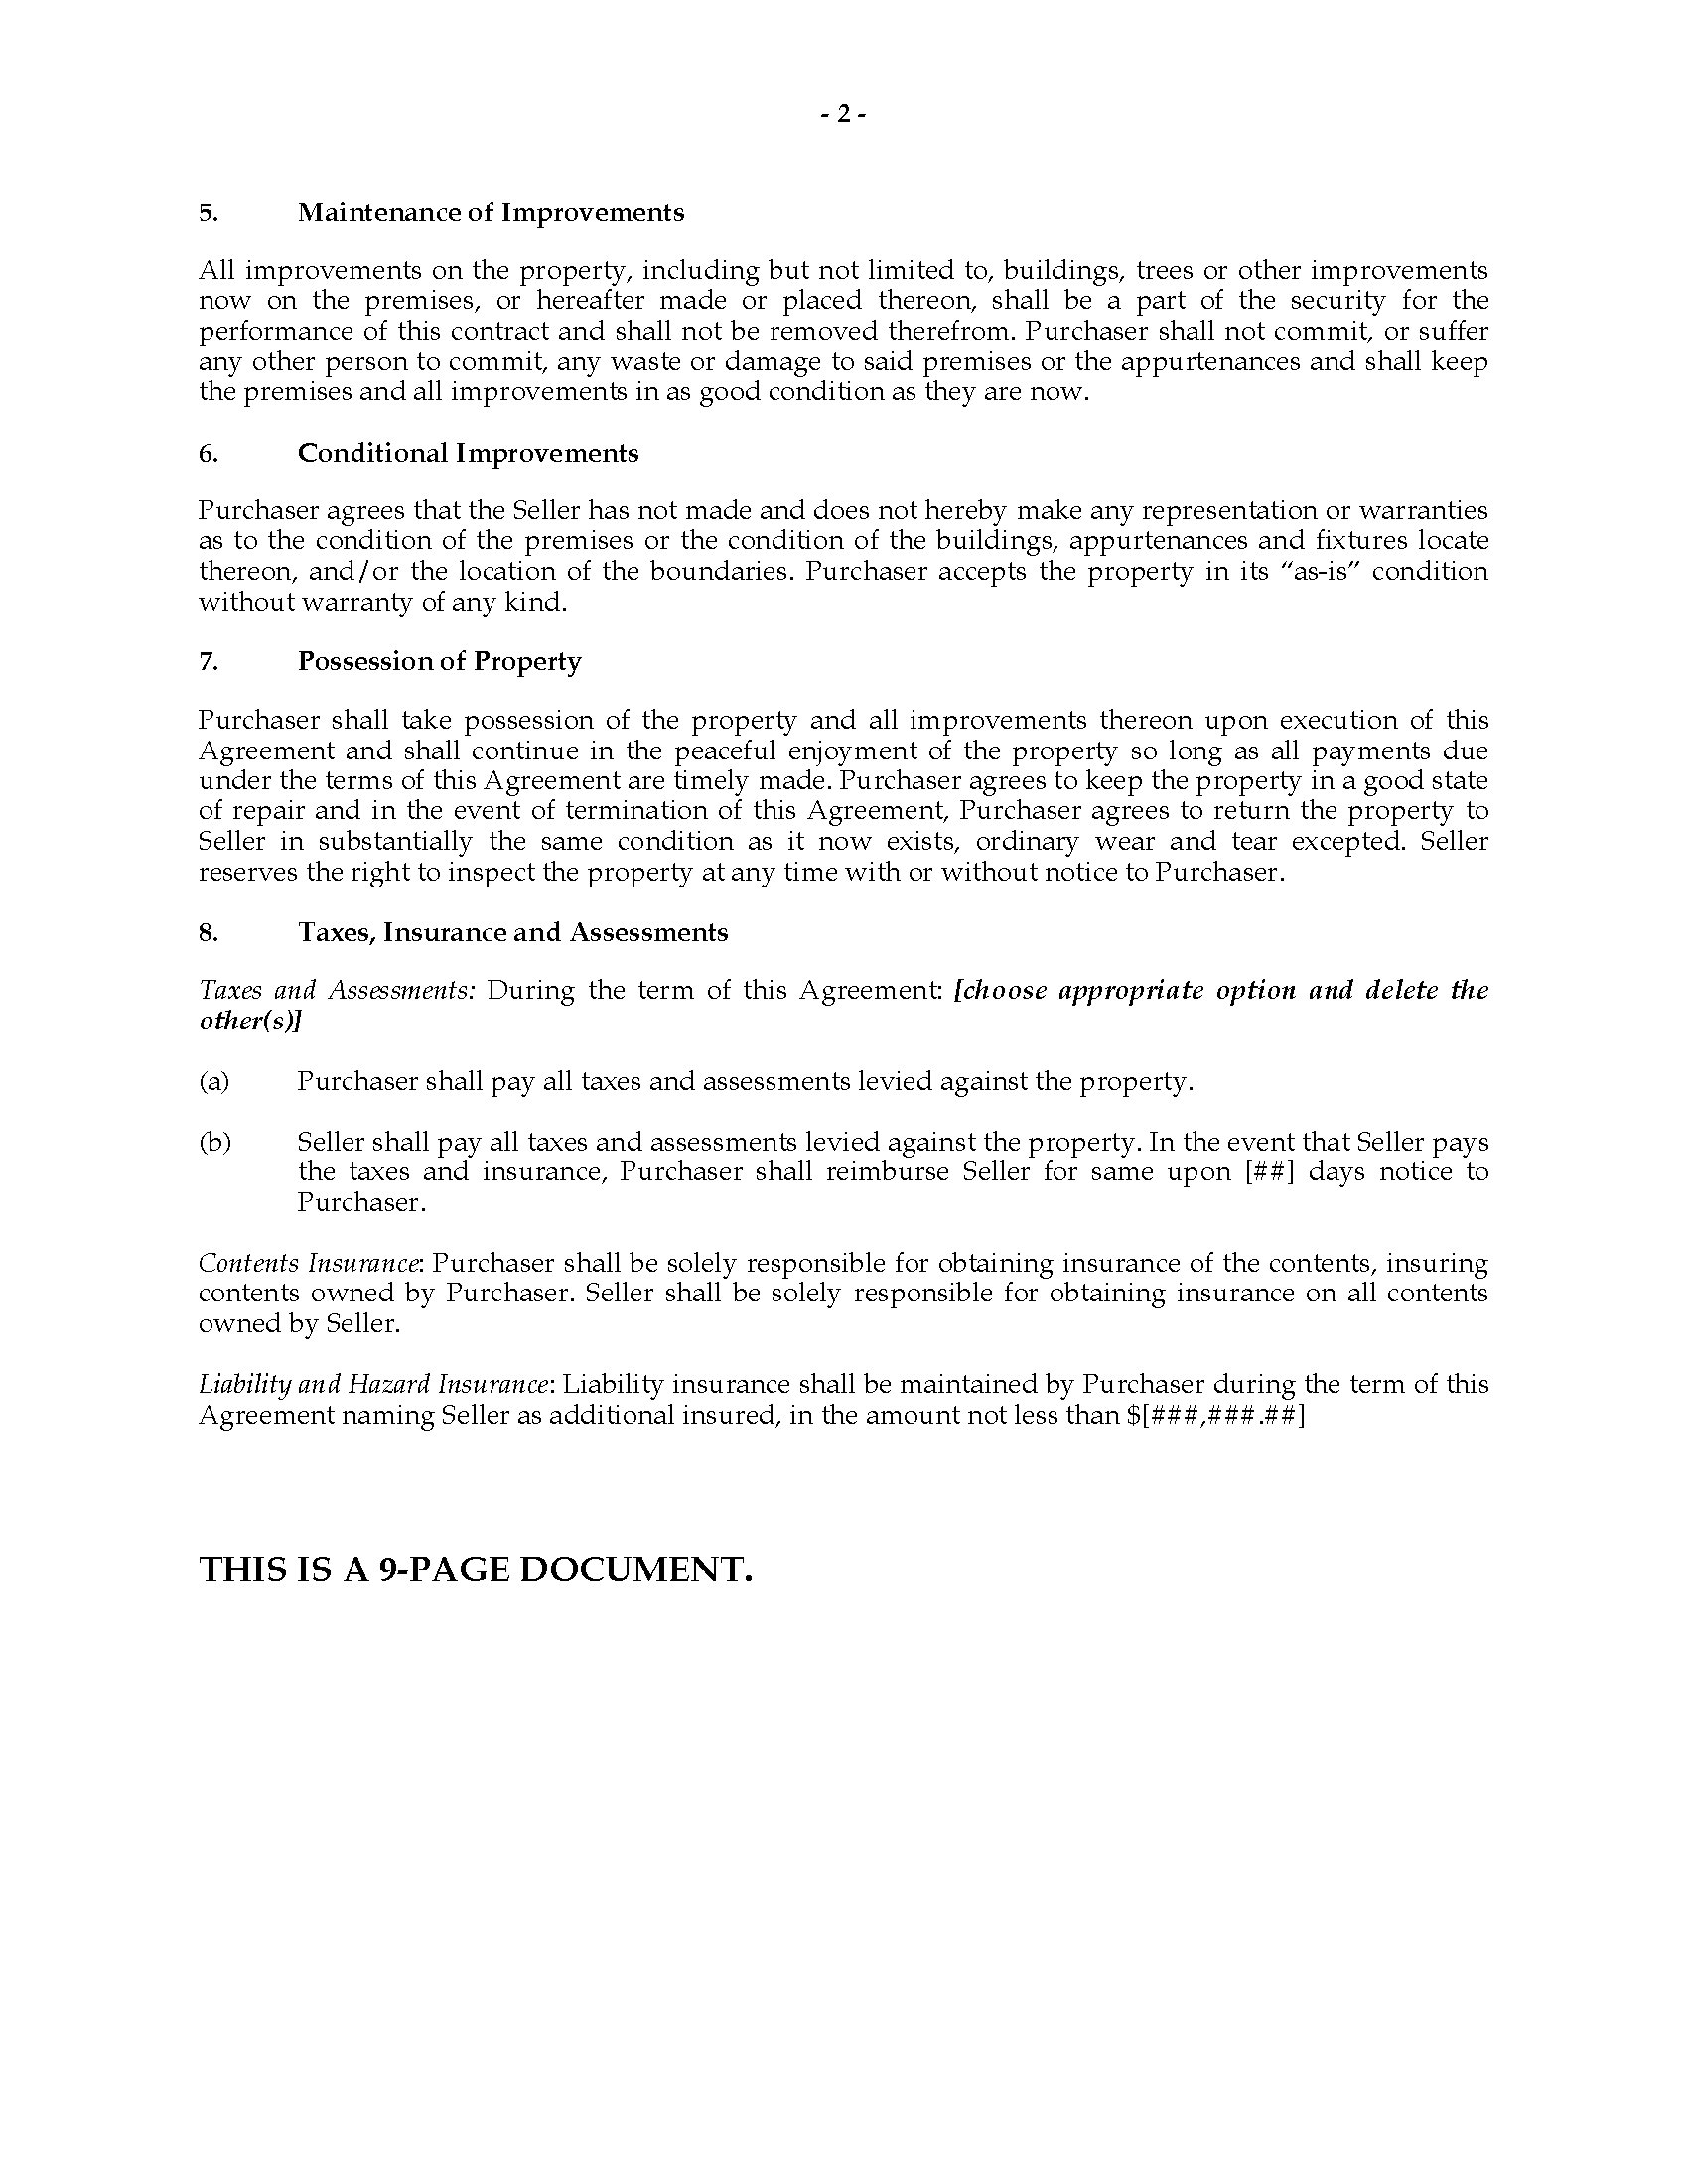 Wisconsin Contract for Deed – Sample Contract for Deed